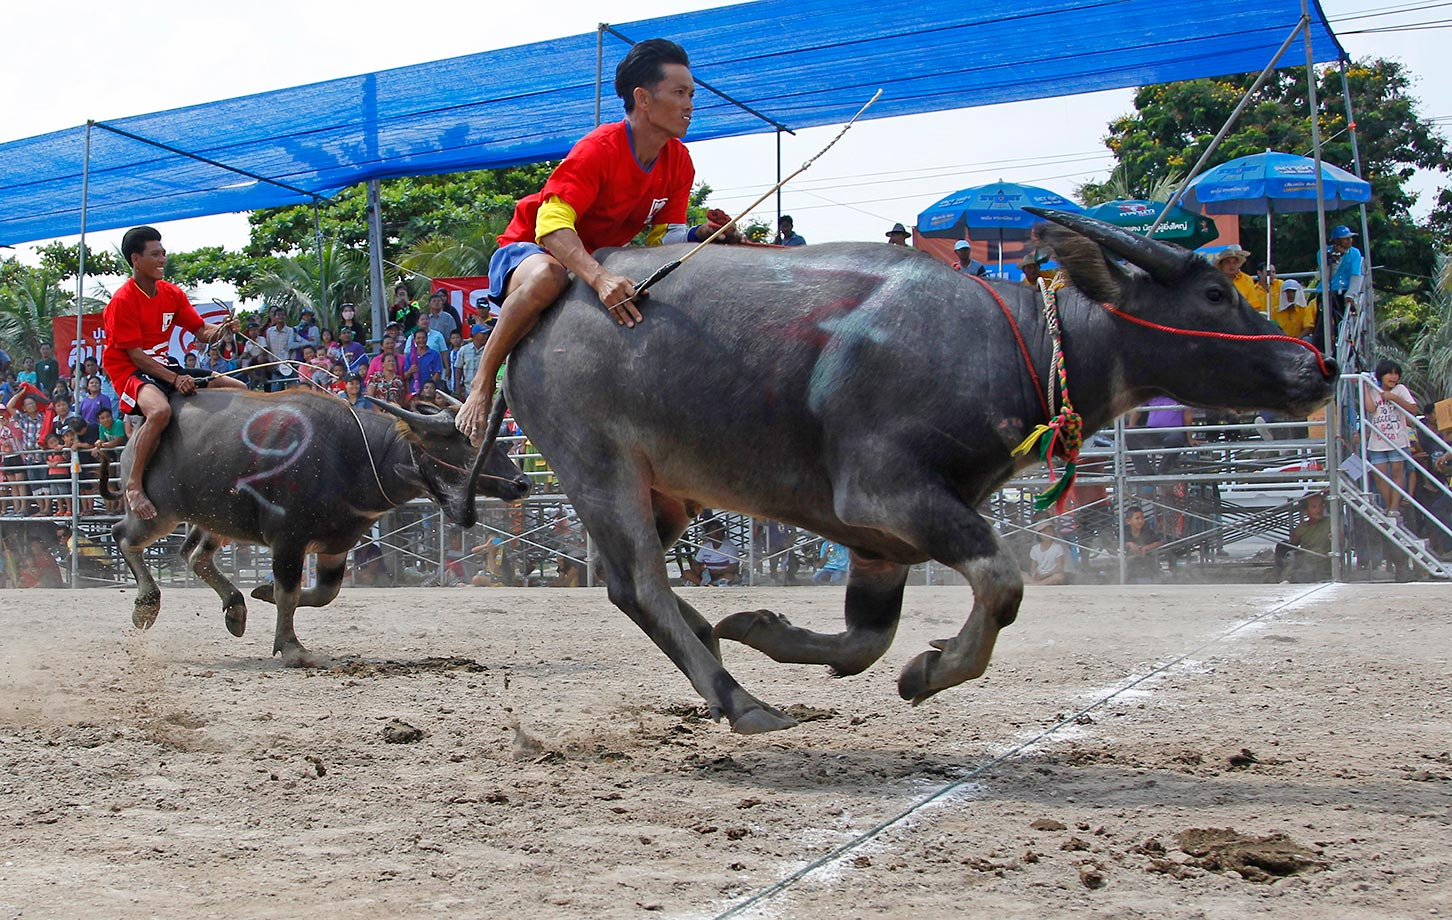 Thai jockeys competing in the water buffalo race in Chonburi Province south of Bangkok.